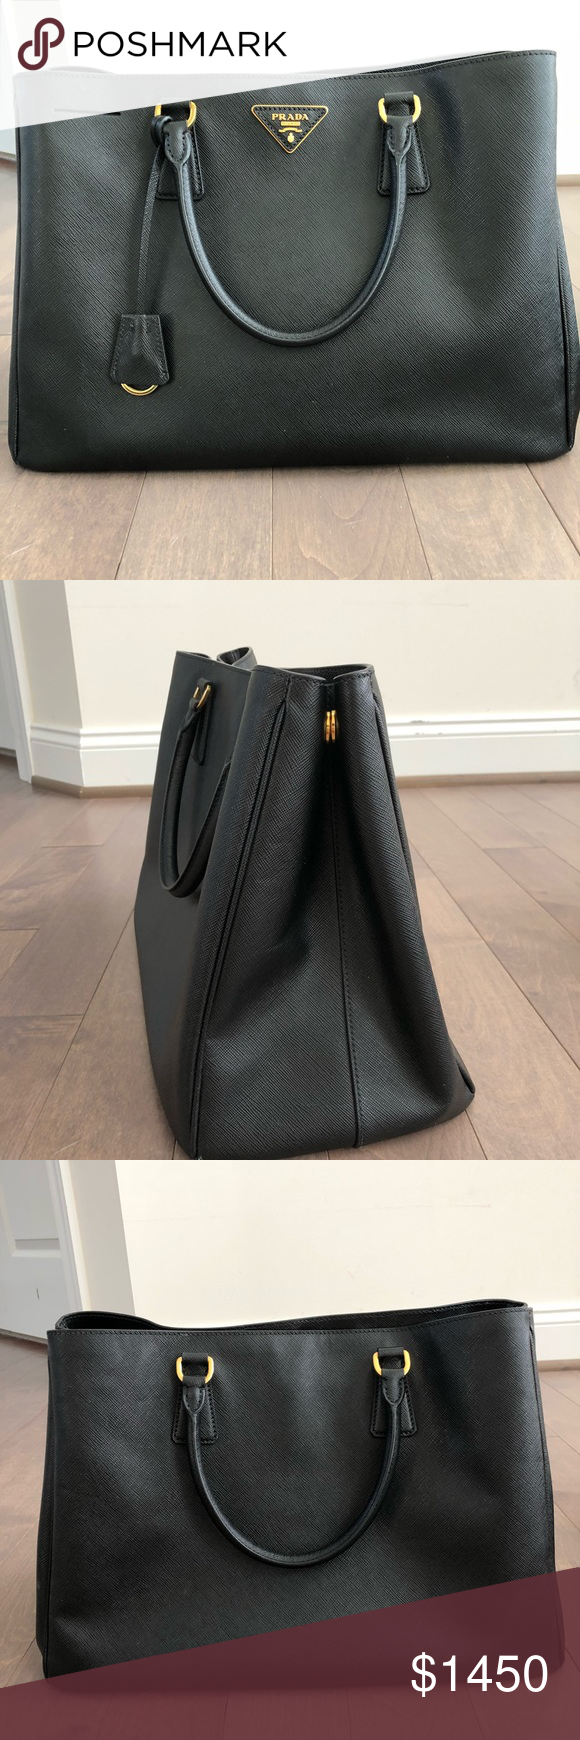 "2311268428be ⭐️PRADA saffiano lux large tote black⭐ Gently used, in excellent condition  SIze: 15 x10x 6.5"" 5"" handle drop Gold tone hardware Top magnetic closure  ..."